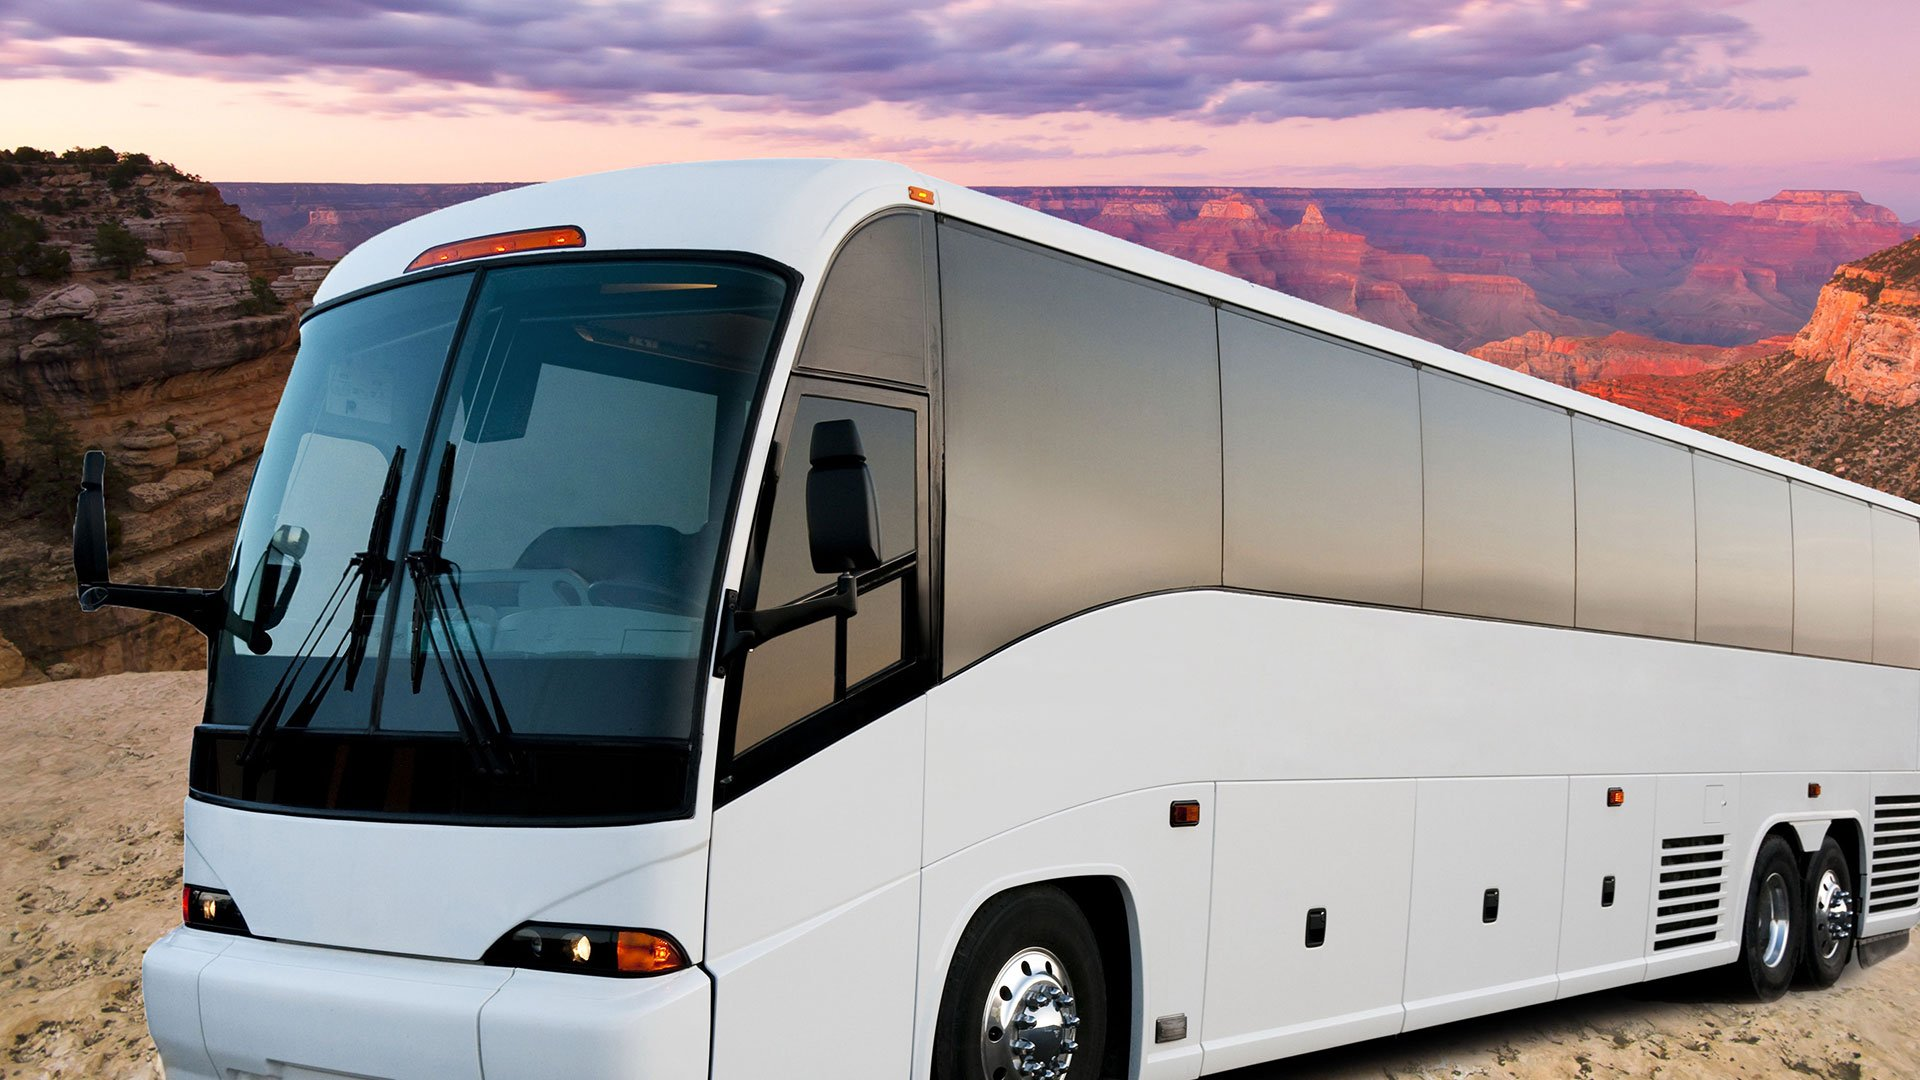 A luxury motorcoach parked at the Grand Canyon South Rim.